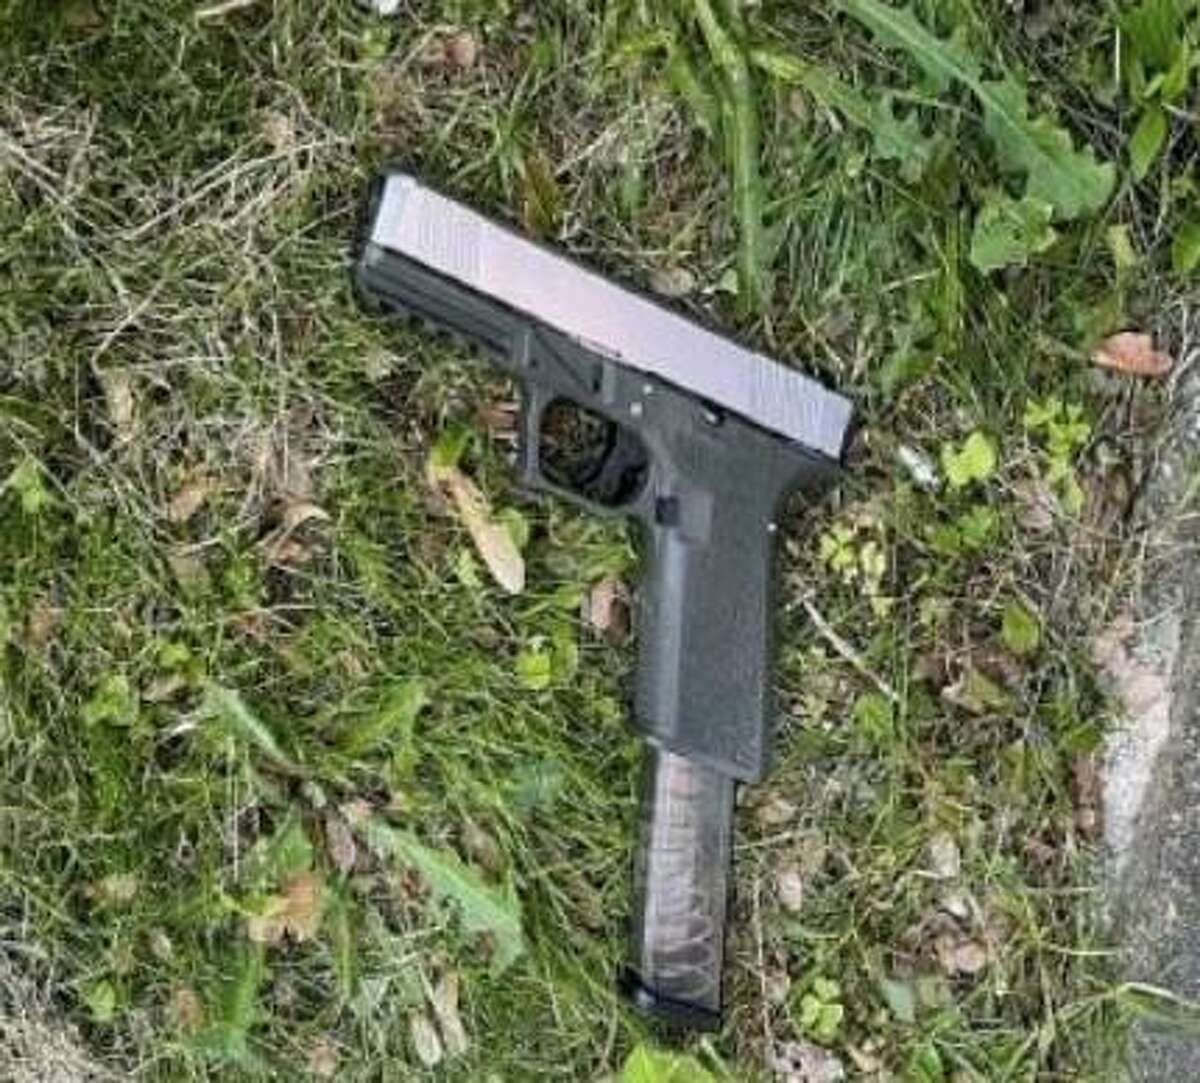 """A picture released by Stratford police of a """"ghost gun"""" recovered after being used by a juvenile in a confrontation with police in May."""